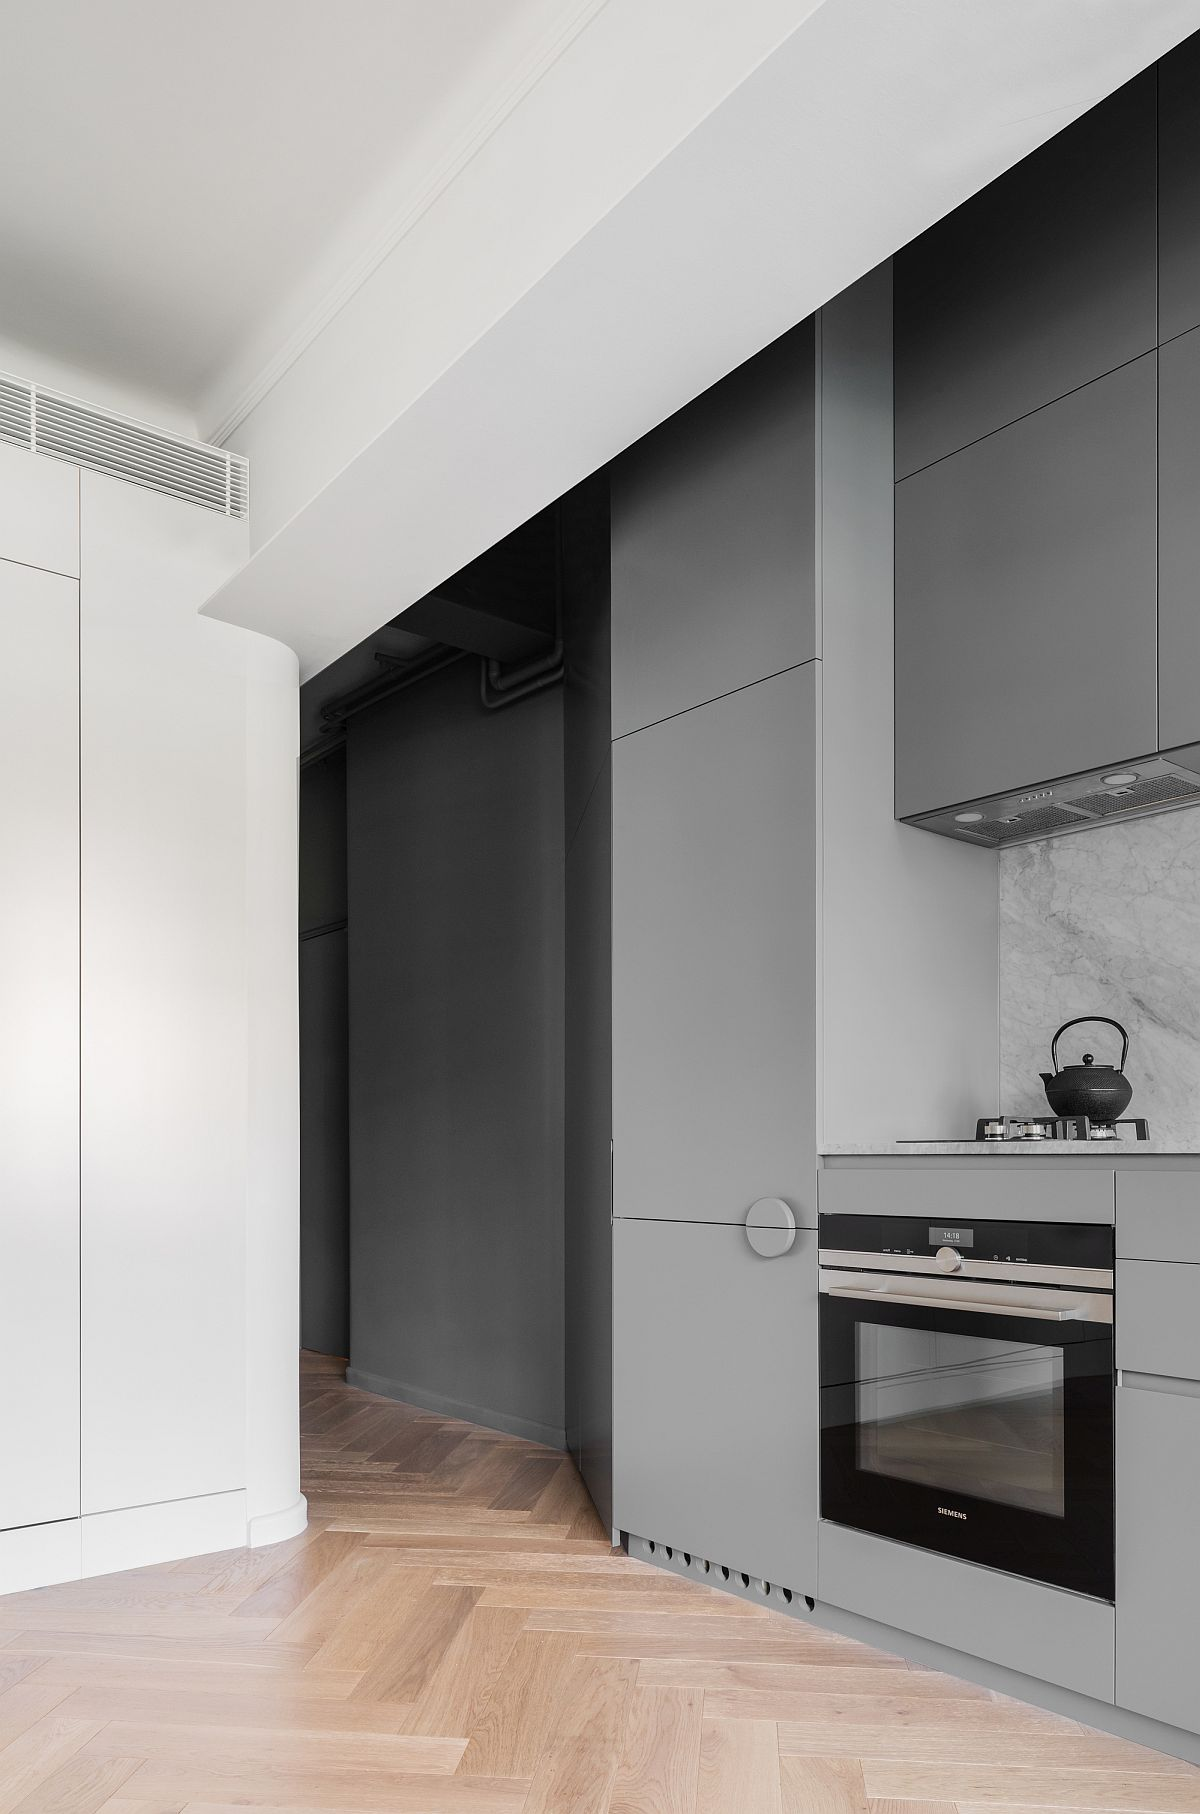 Single-wall kitchen in gray saves space while adding style to the interior